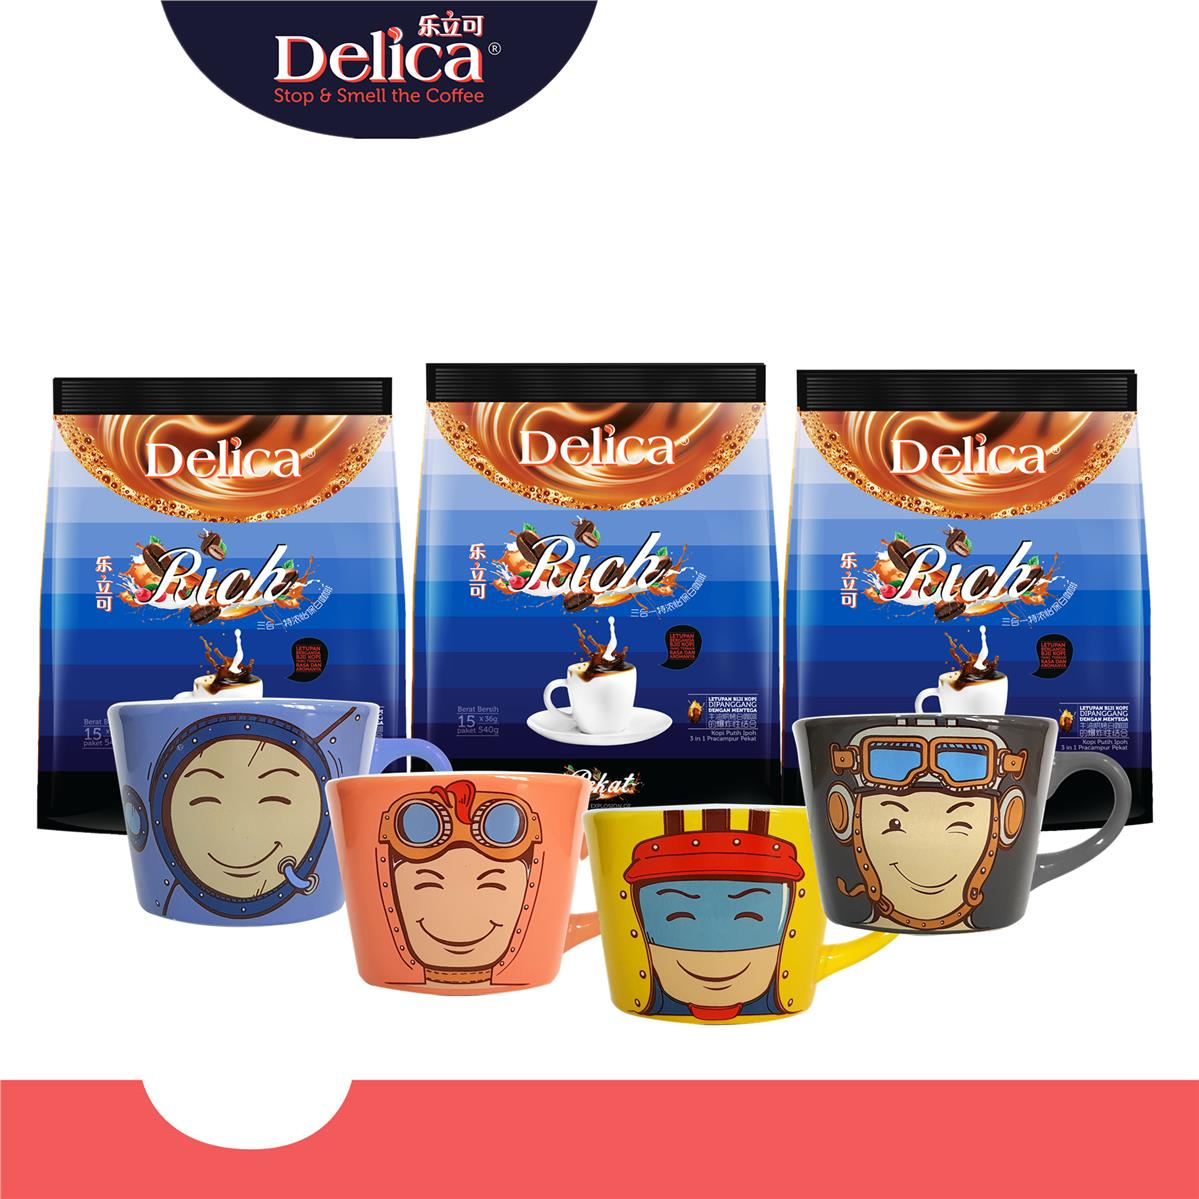 [Delica Coffee] Rich (15 x 36g) x 3 packs